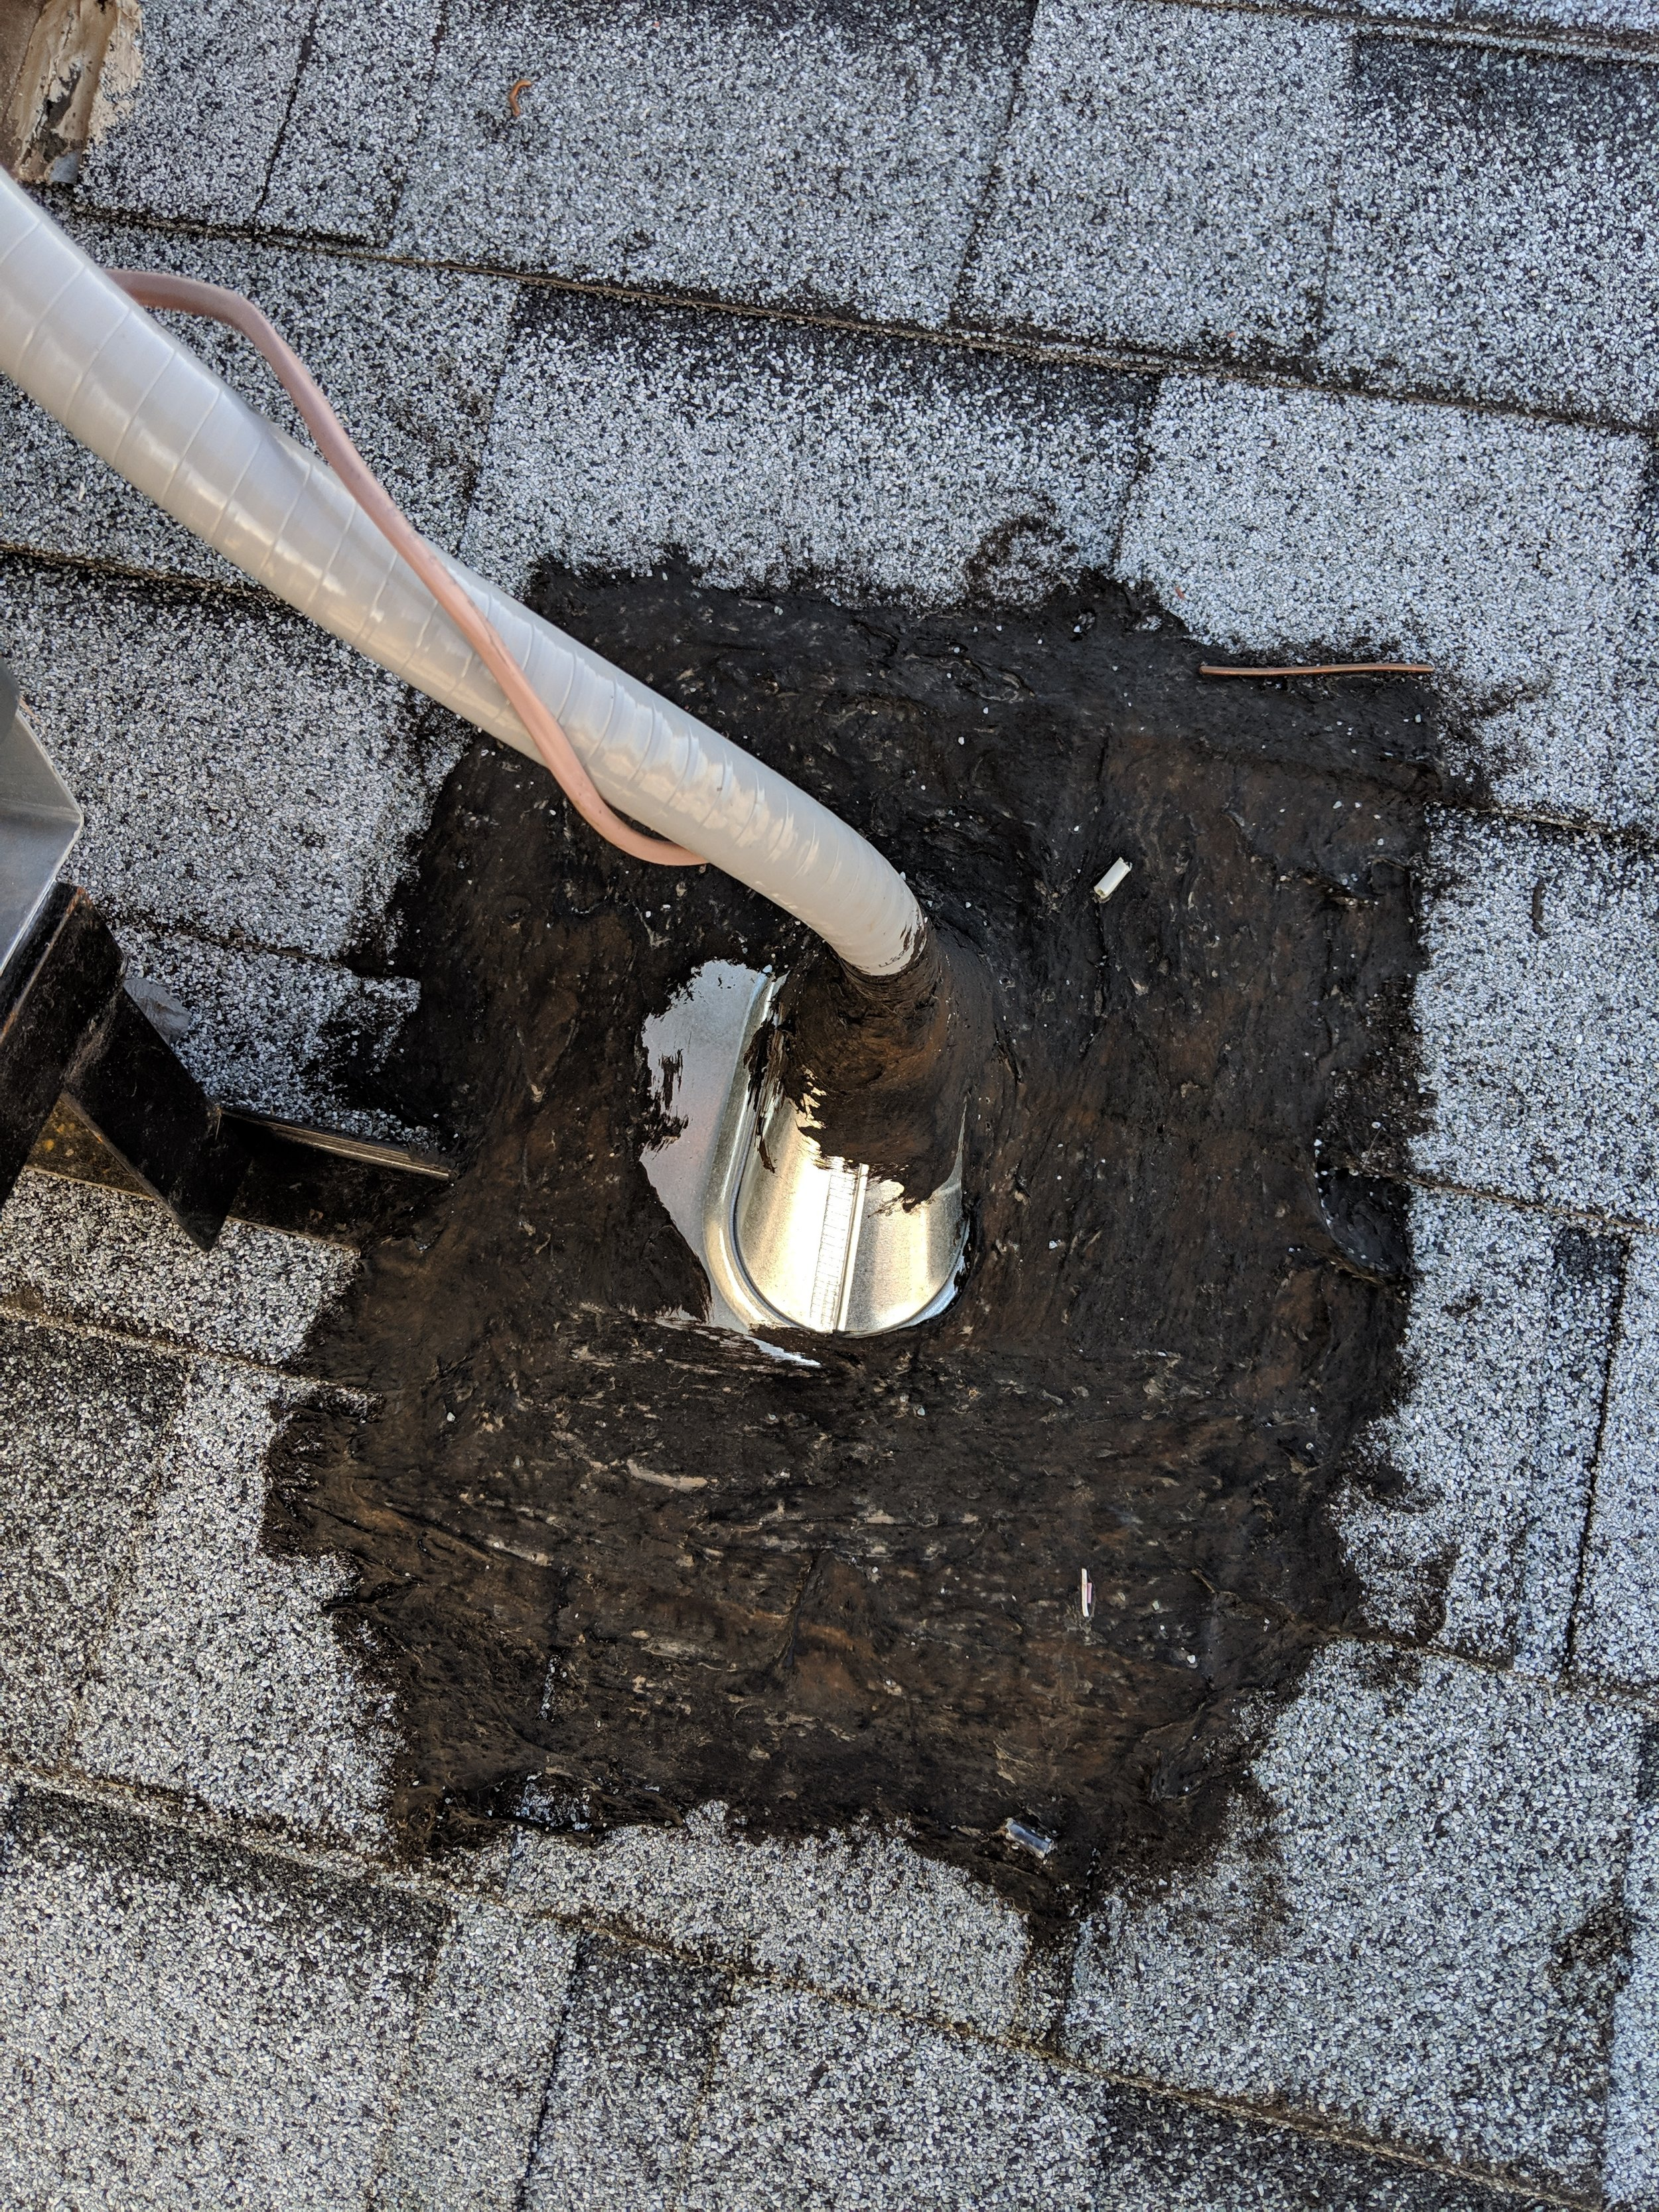 Roof flashing around electrical conduit to heat pump was completely covered with tar. This is not the work of a professional roofer and should be repaired.